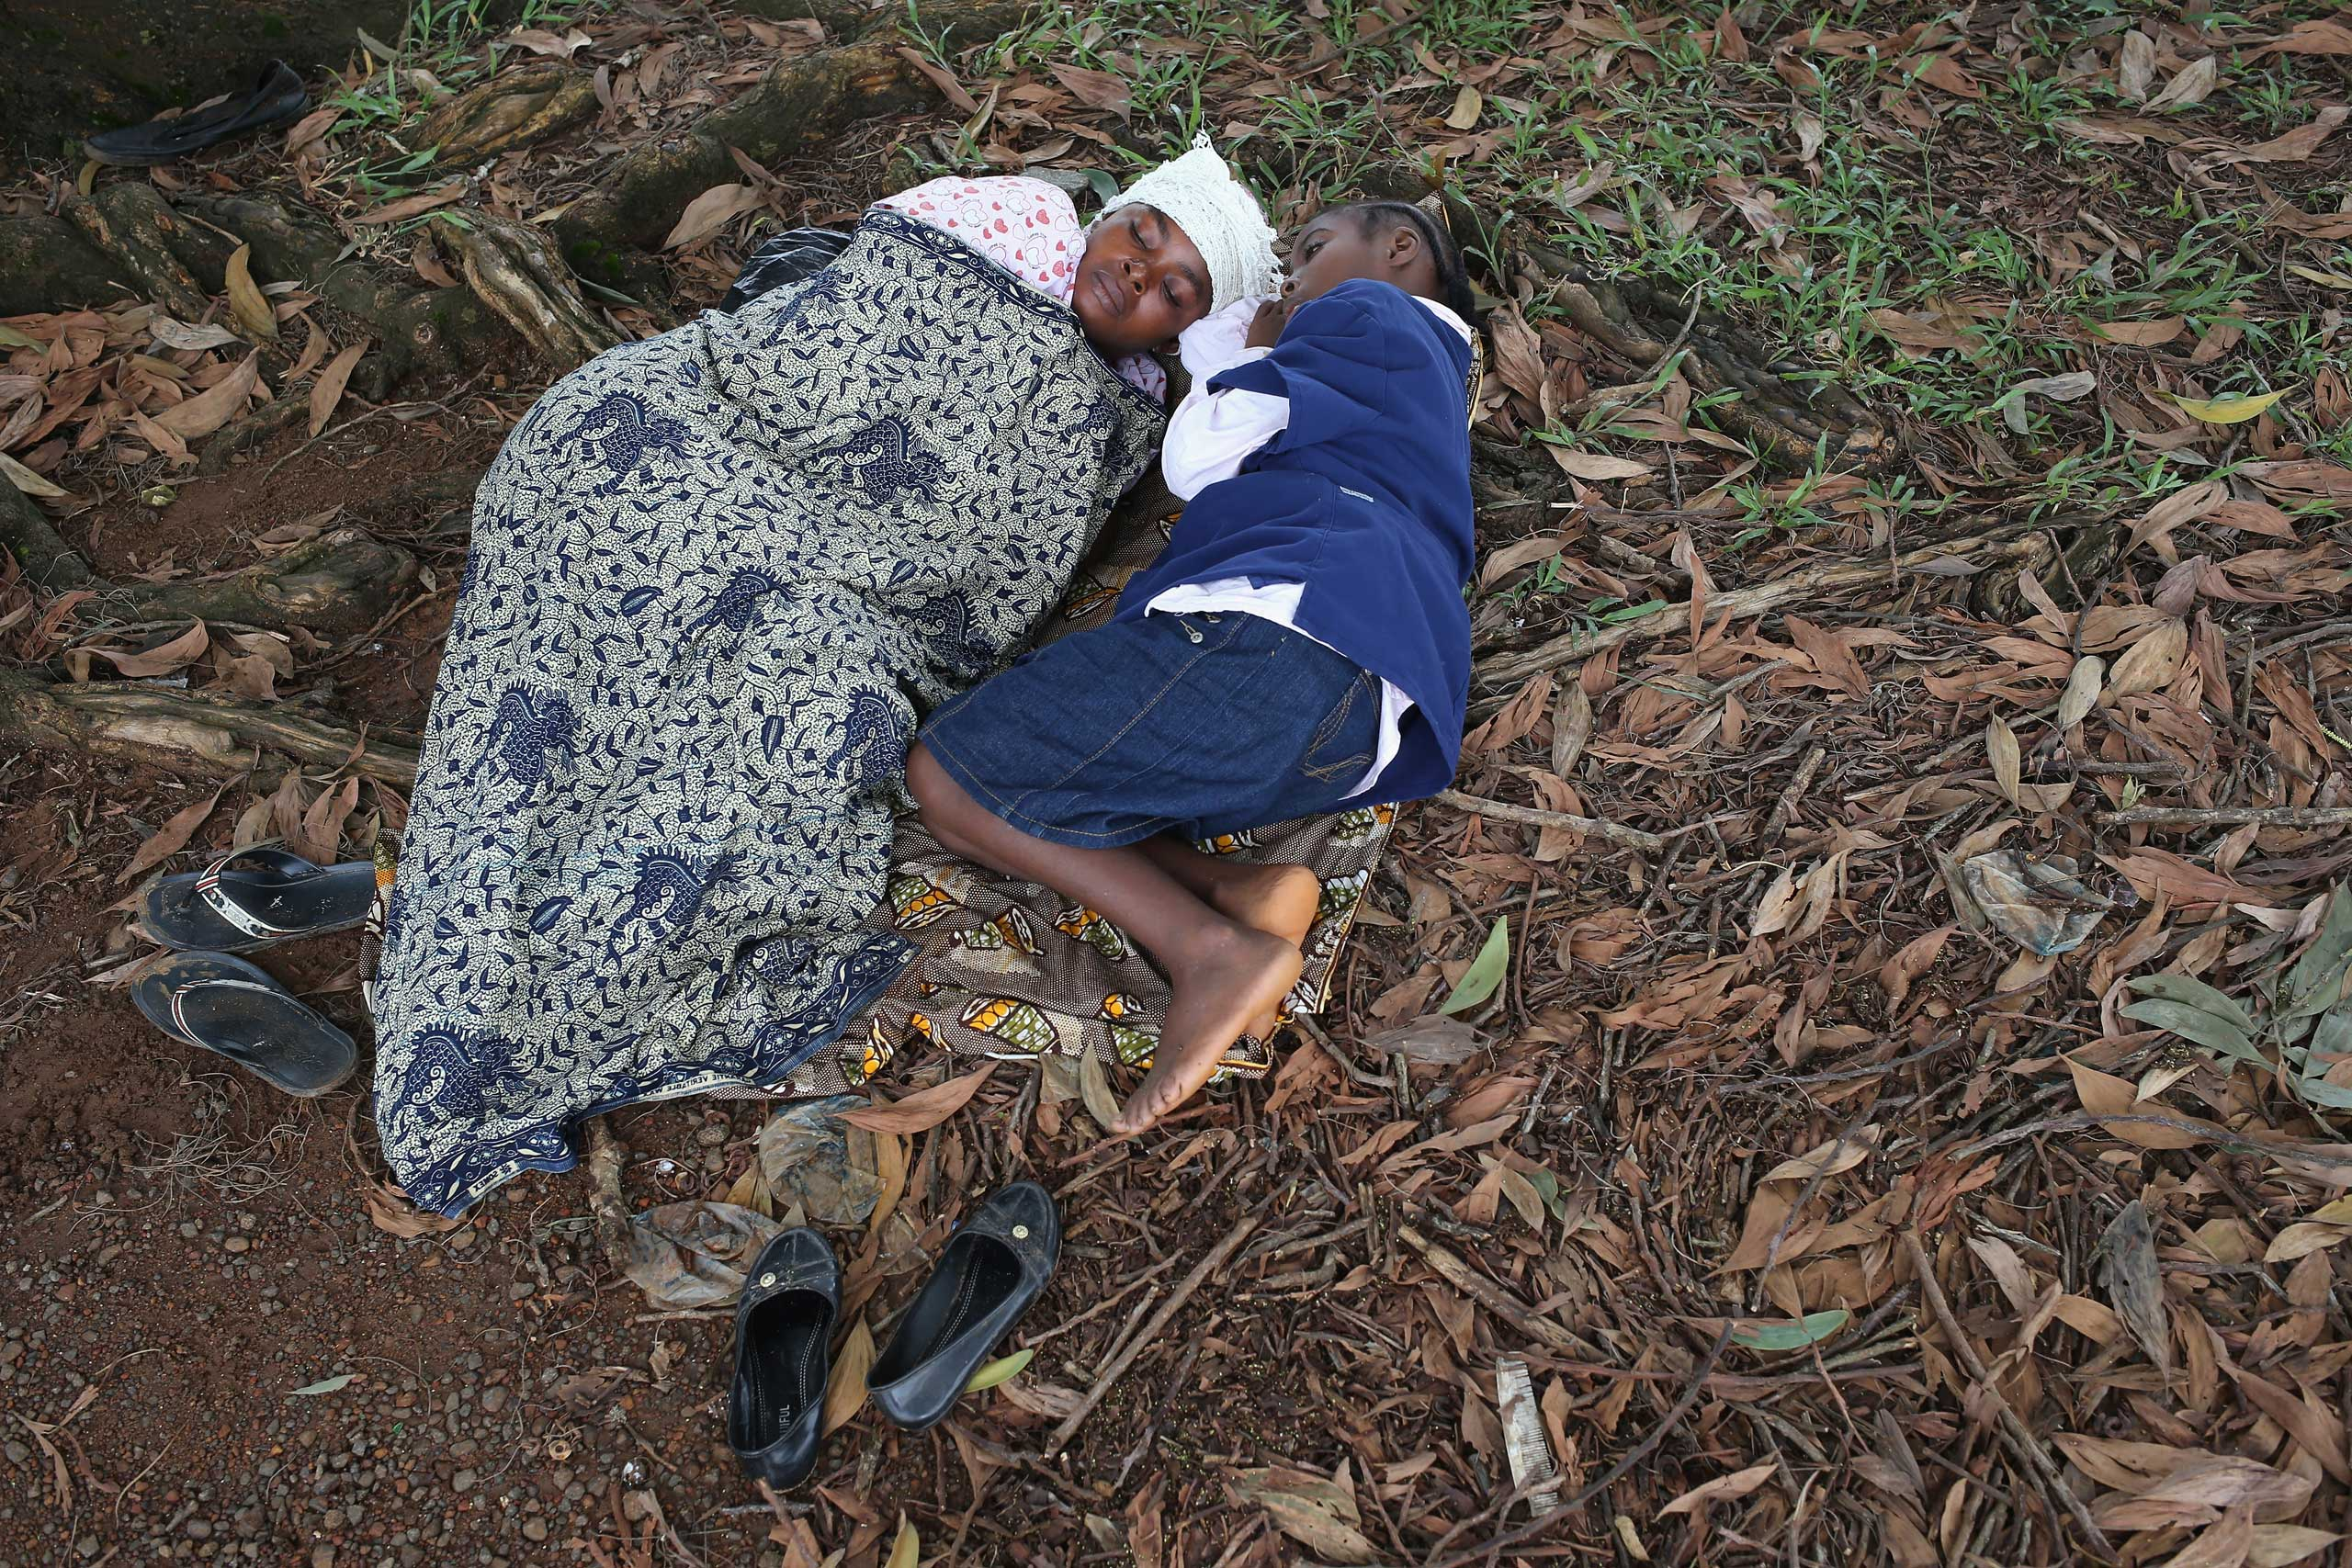 Hanah Siafa lies with her daughter Josephine, 10, while hoping to enter the new Doctors Without Borders , Ebola treatment center on Aug. 17, 2014 in Monrovia.